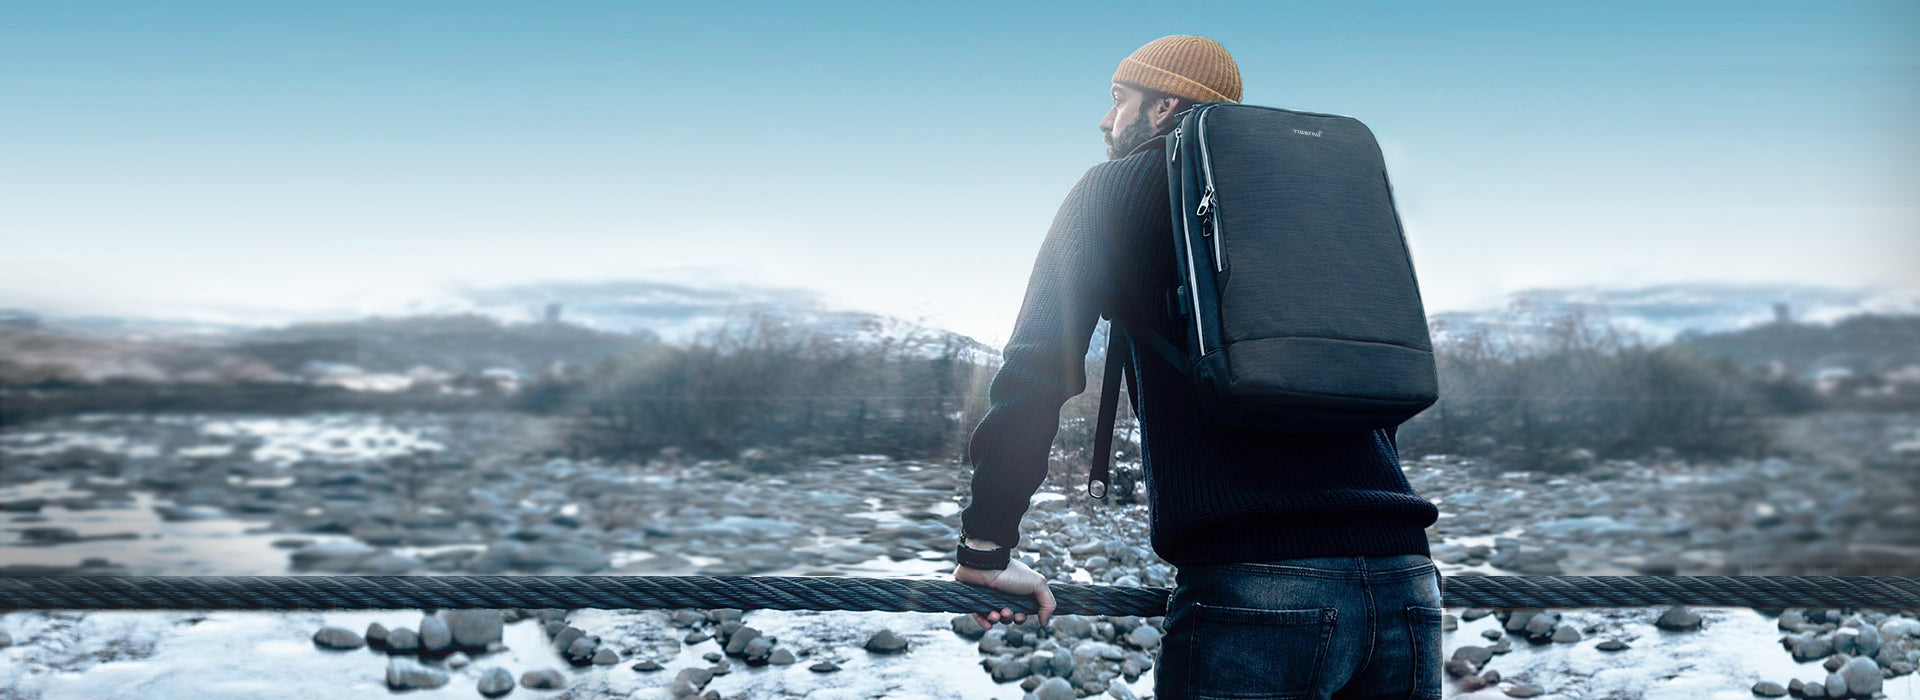 Background image a man with a backpack looks into the distance